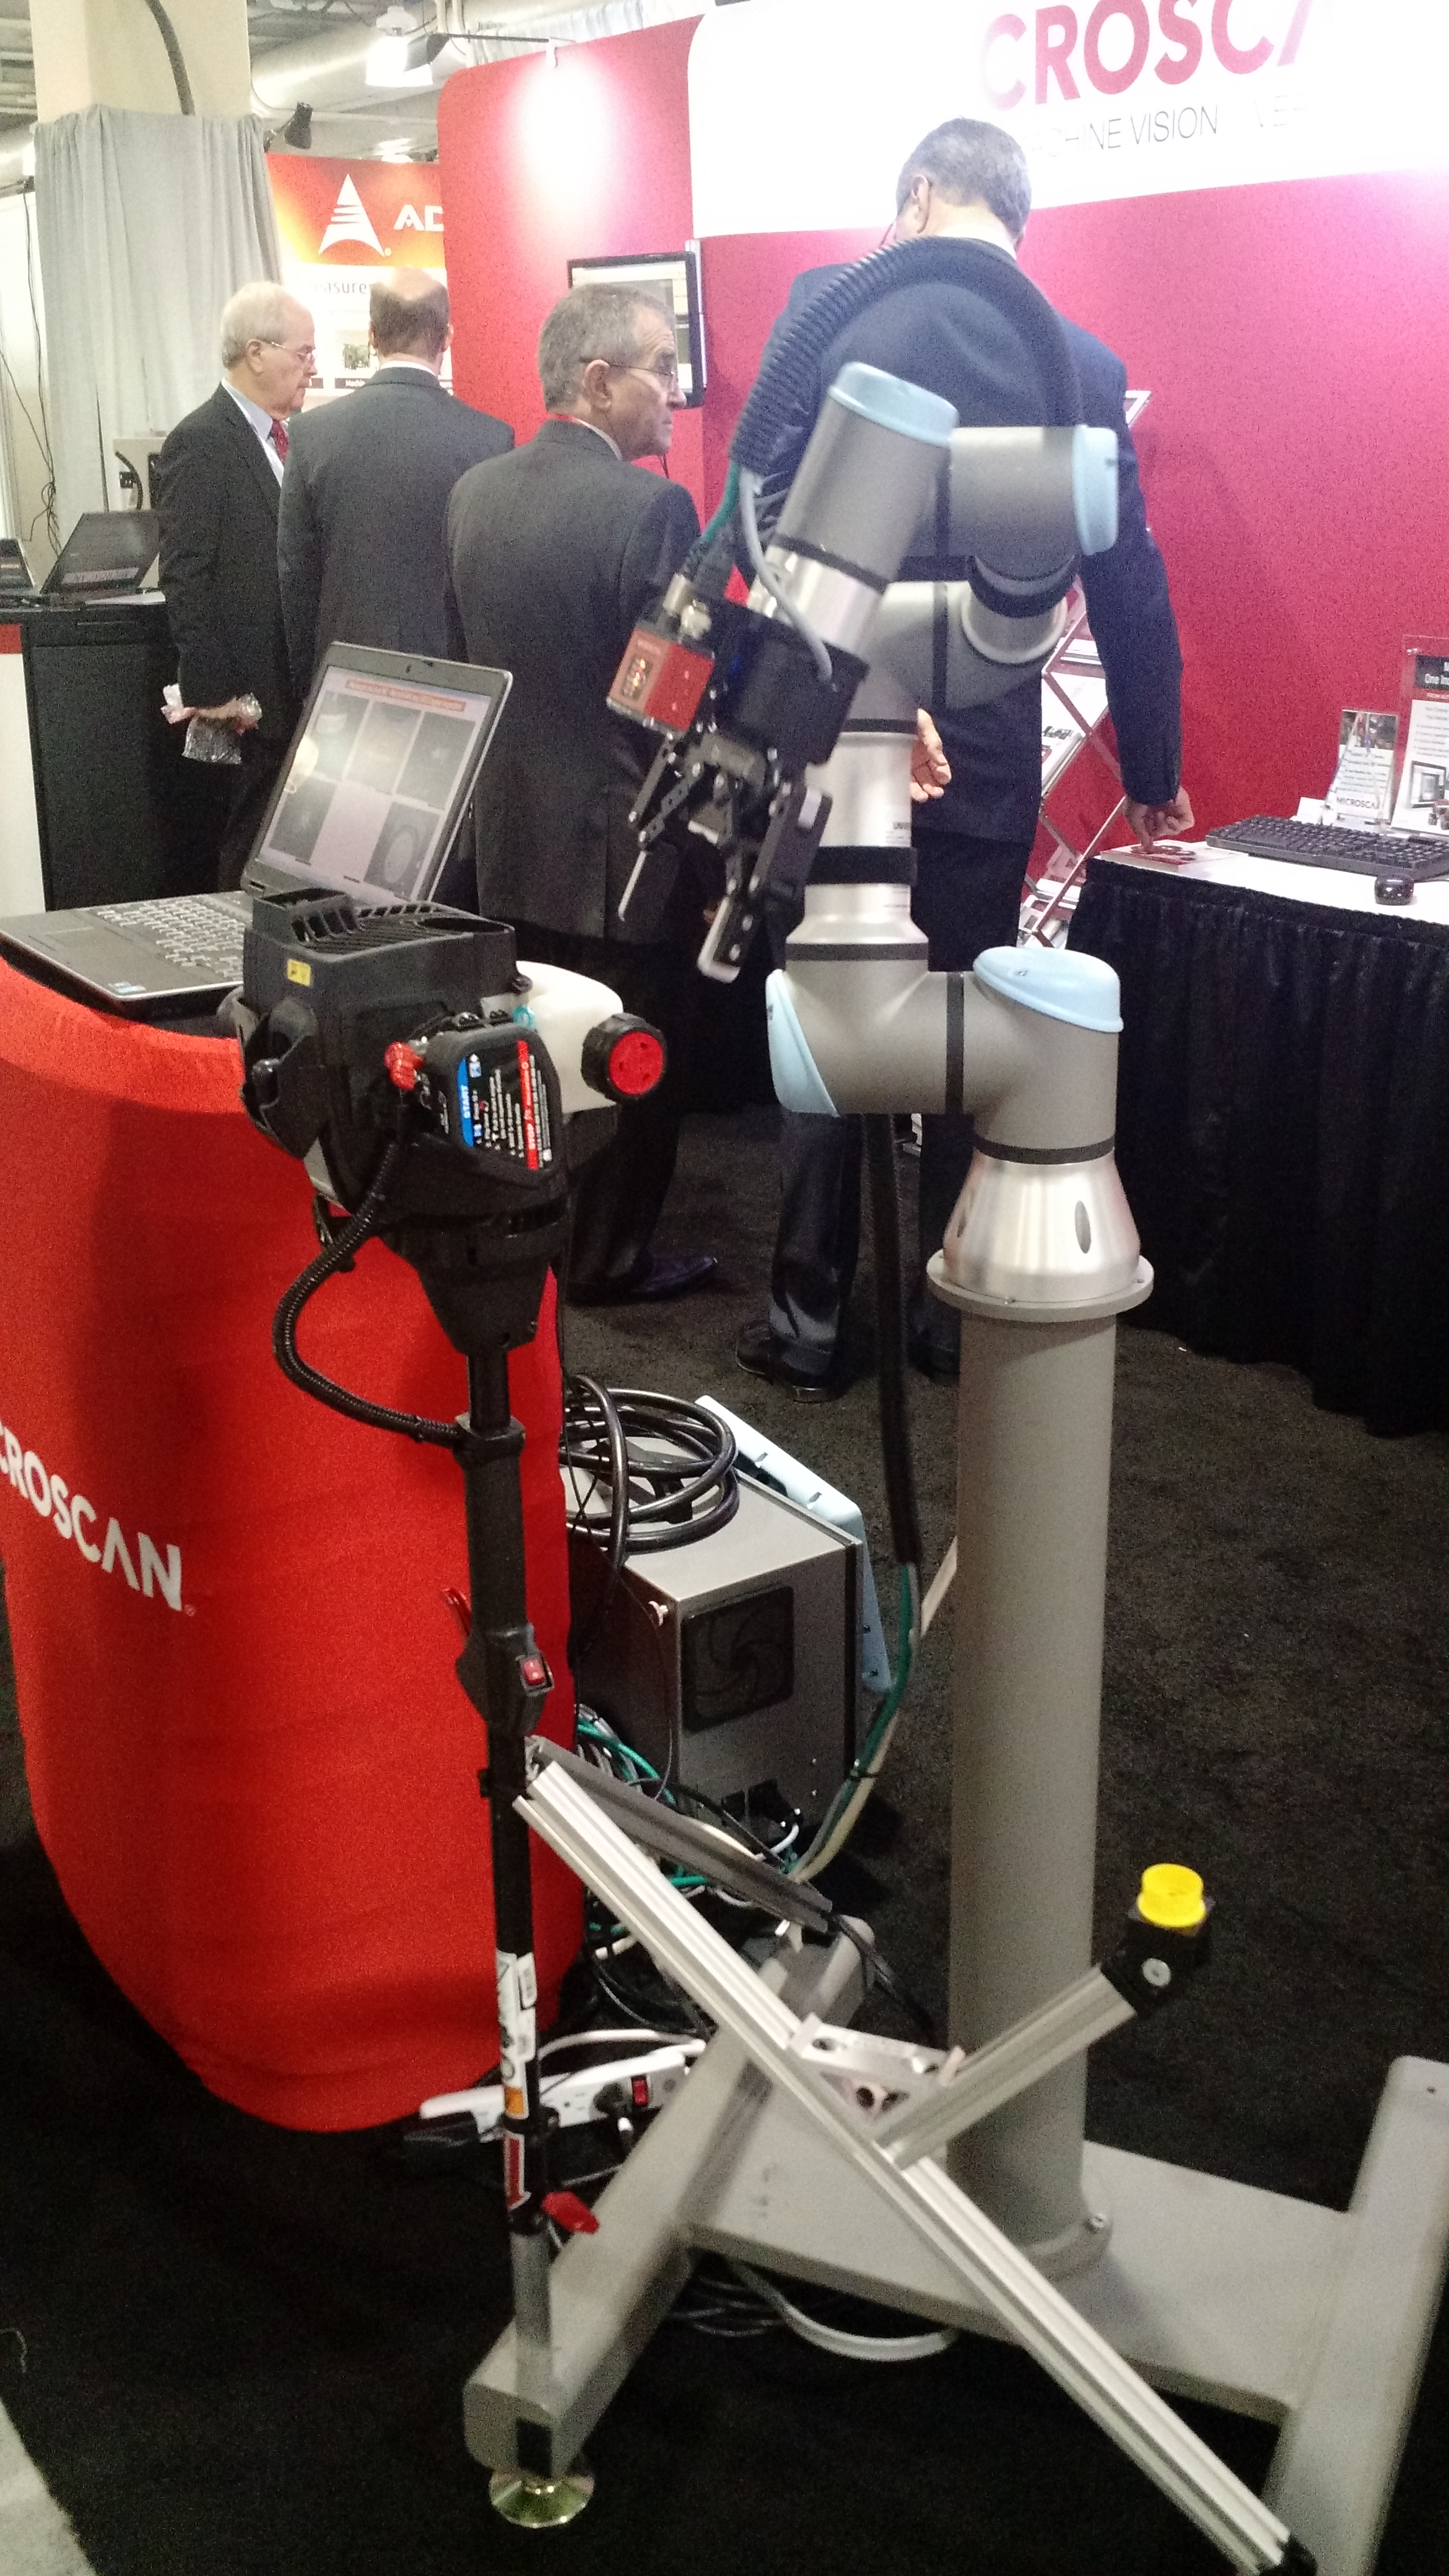 UR3 Robot with Microscan's new smart camera at Vision Show